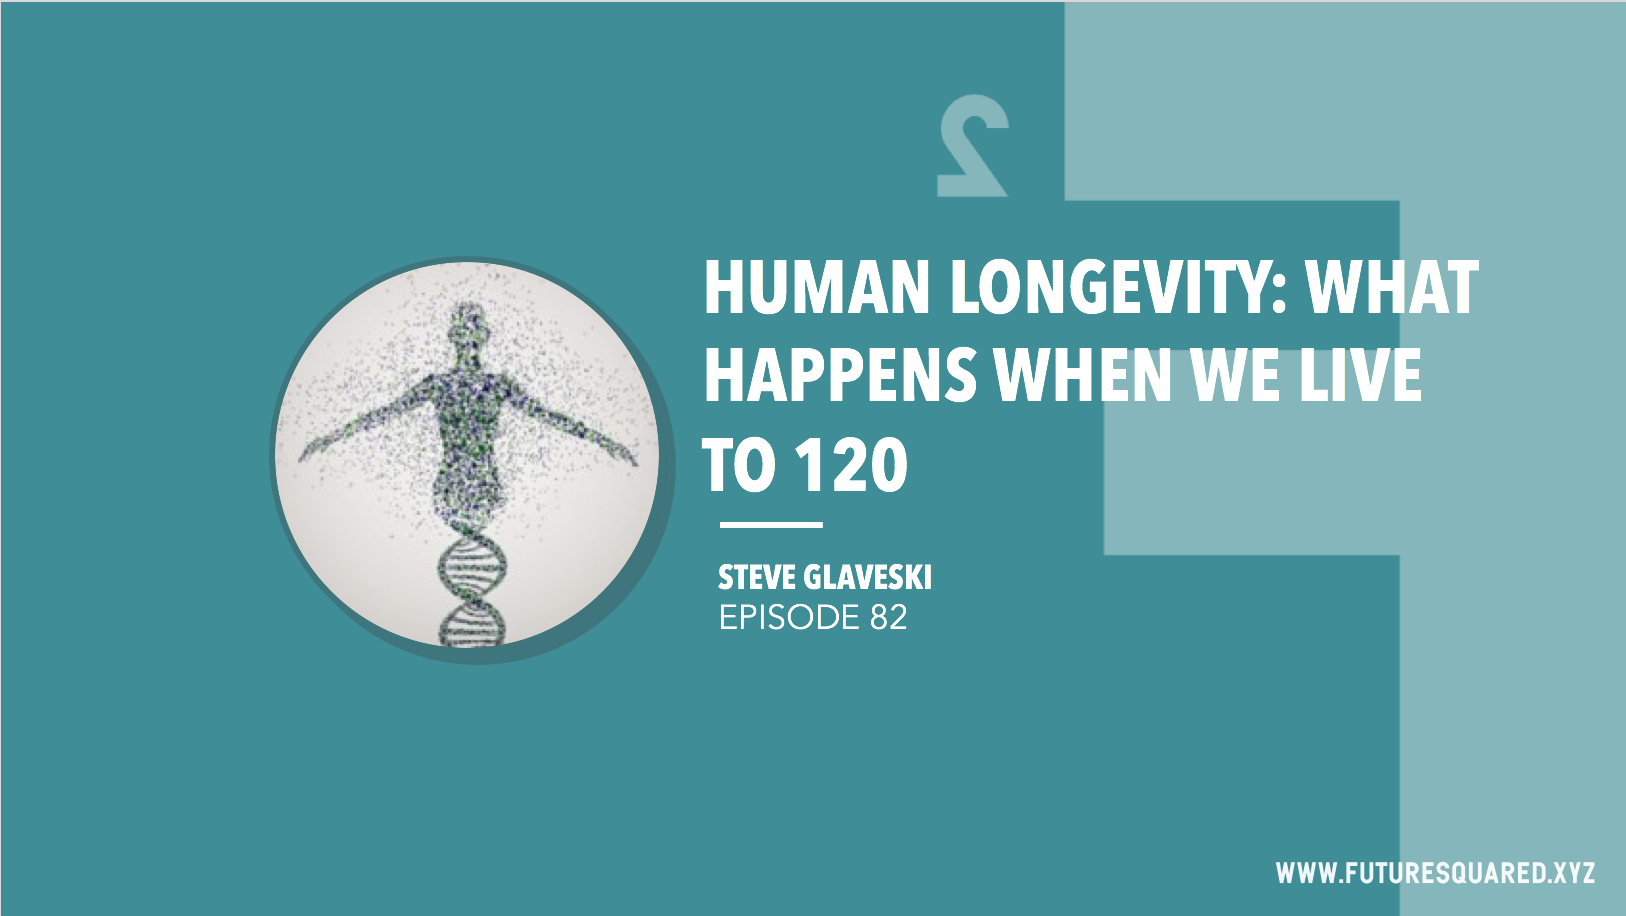 Future Squared Episode #82: Human Longevity: What Happens When We Live To 120?